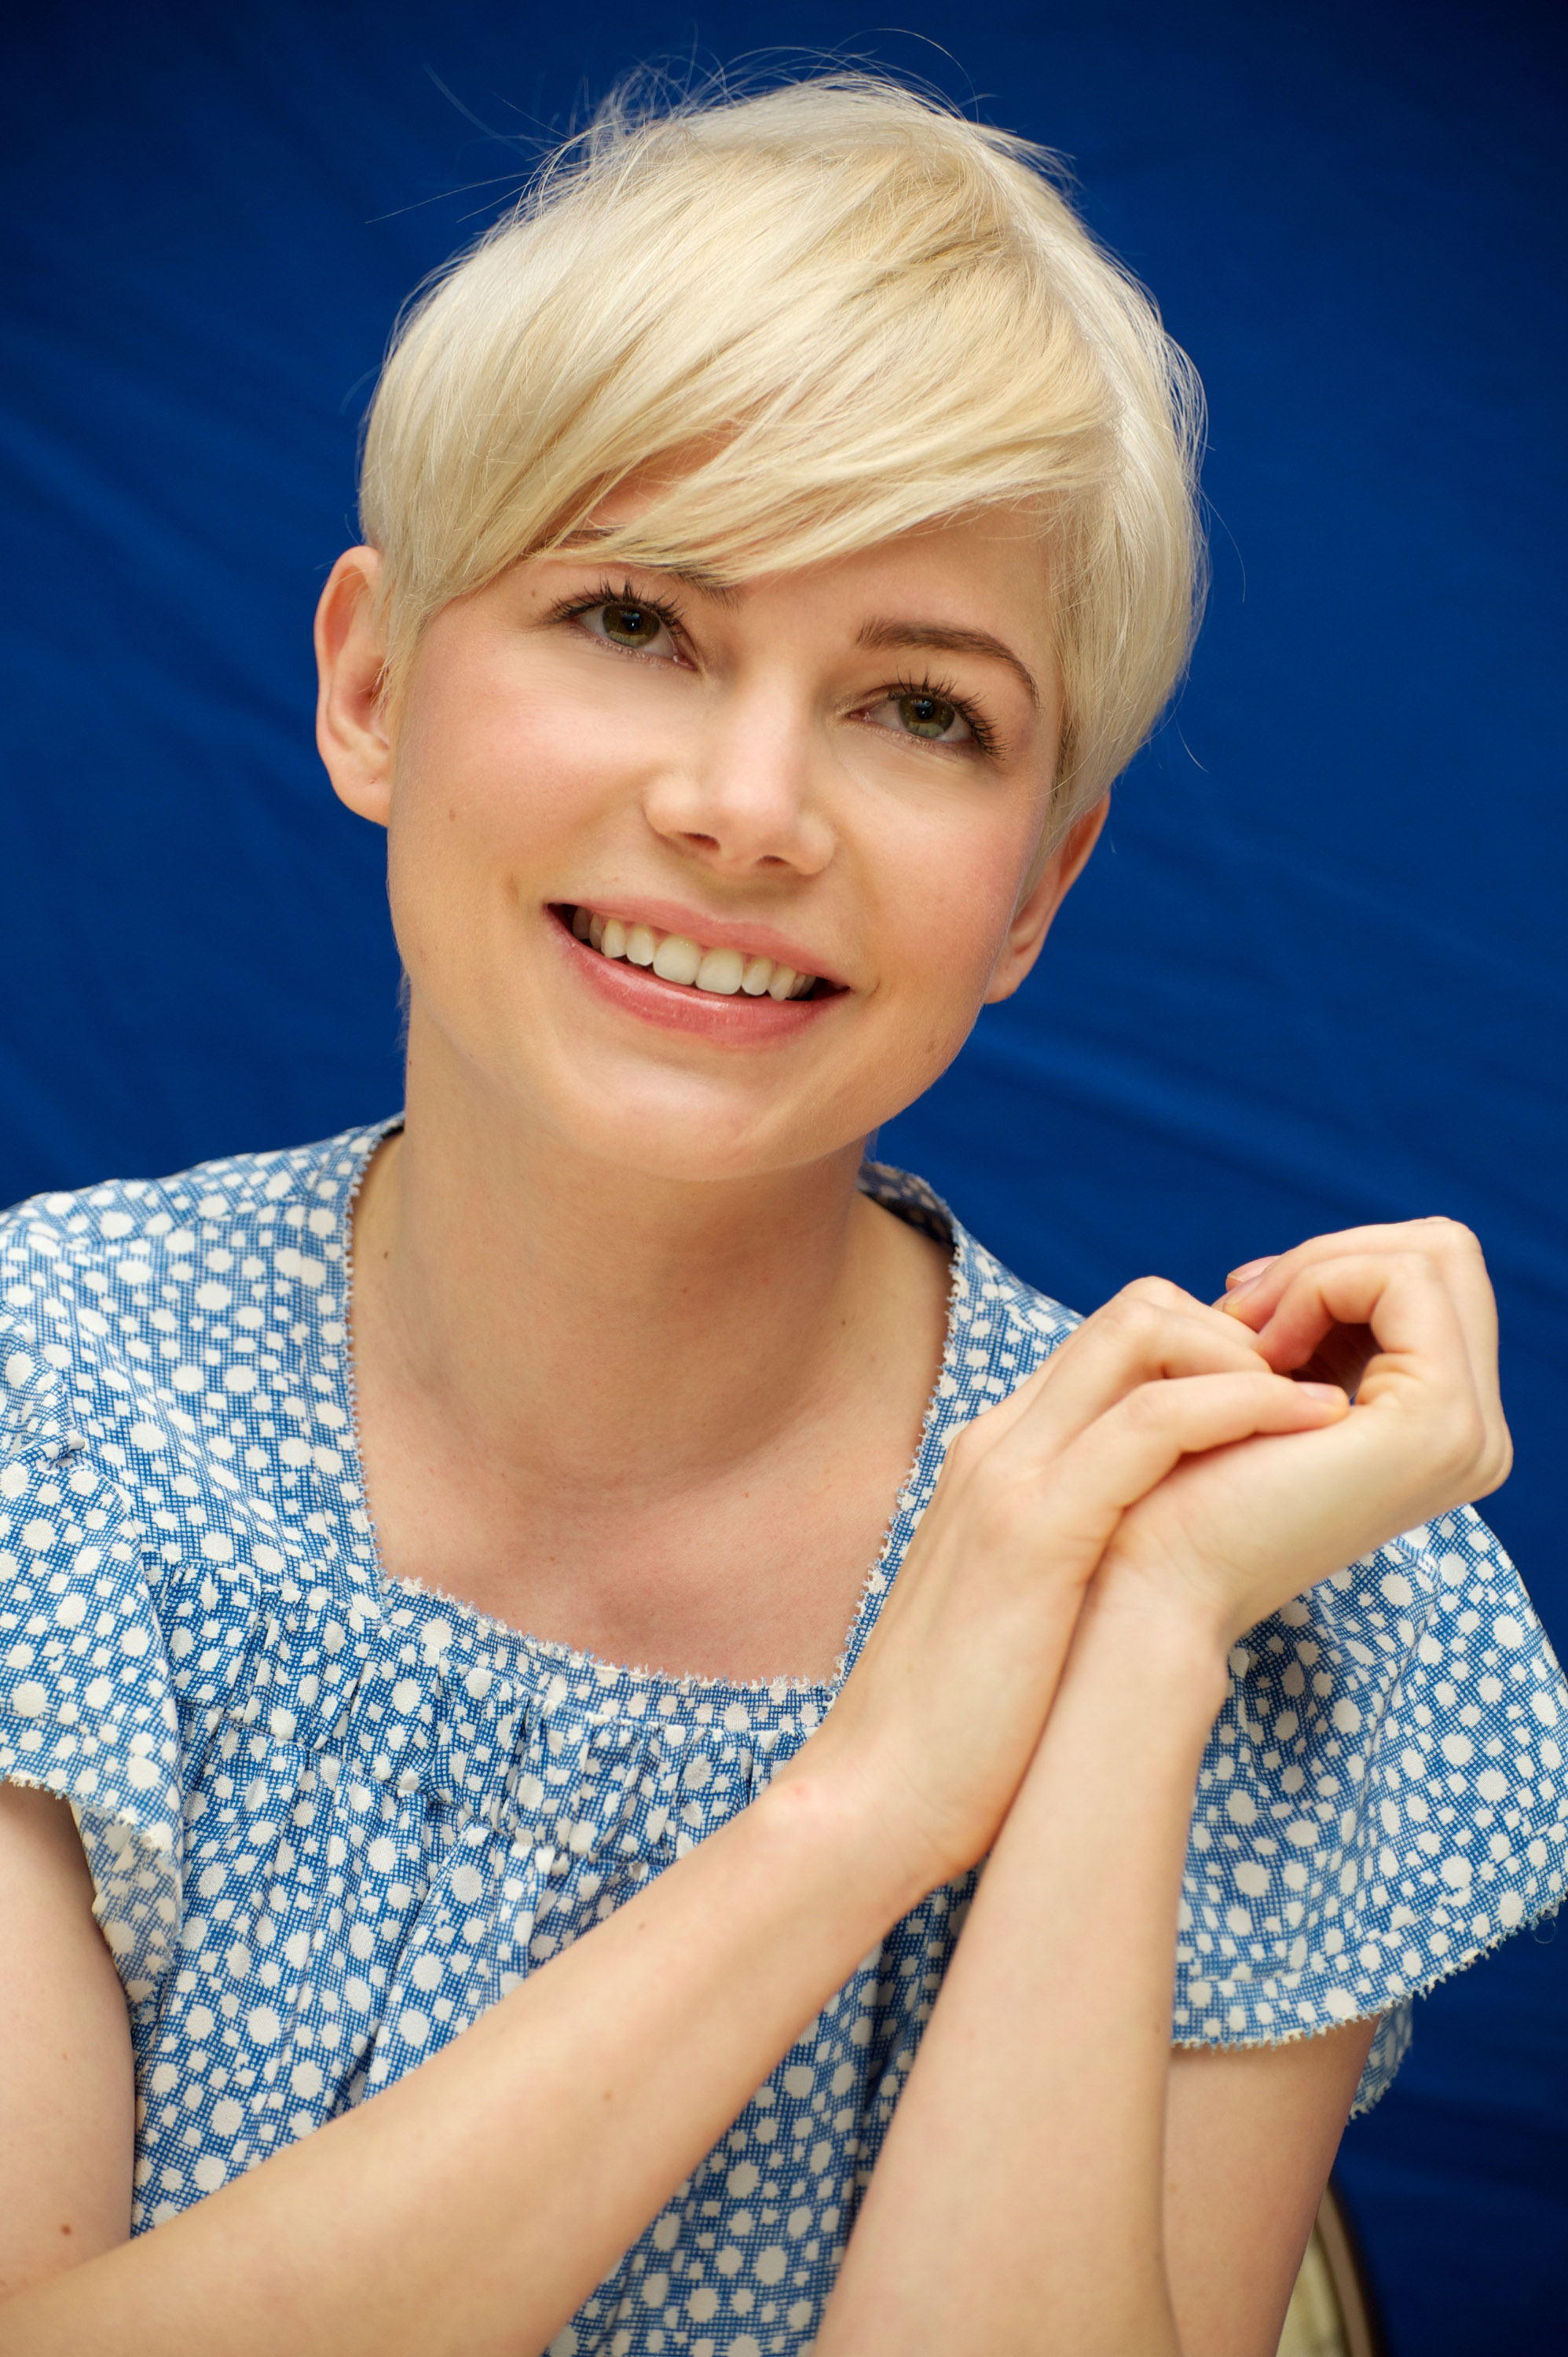 Blonde Hair Pixie - Women Hairstyles